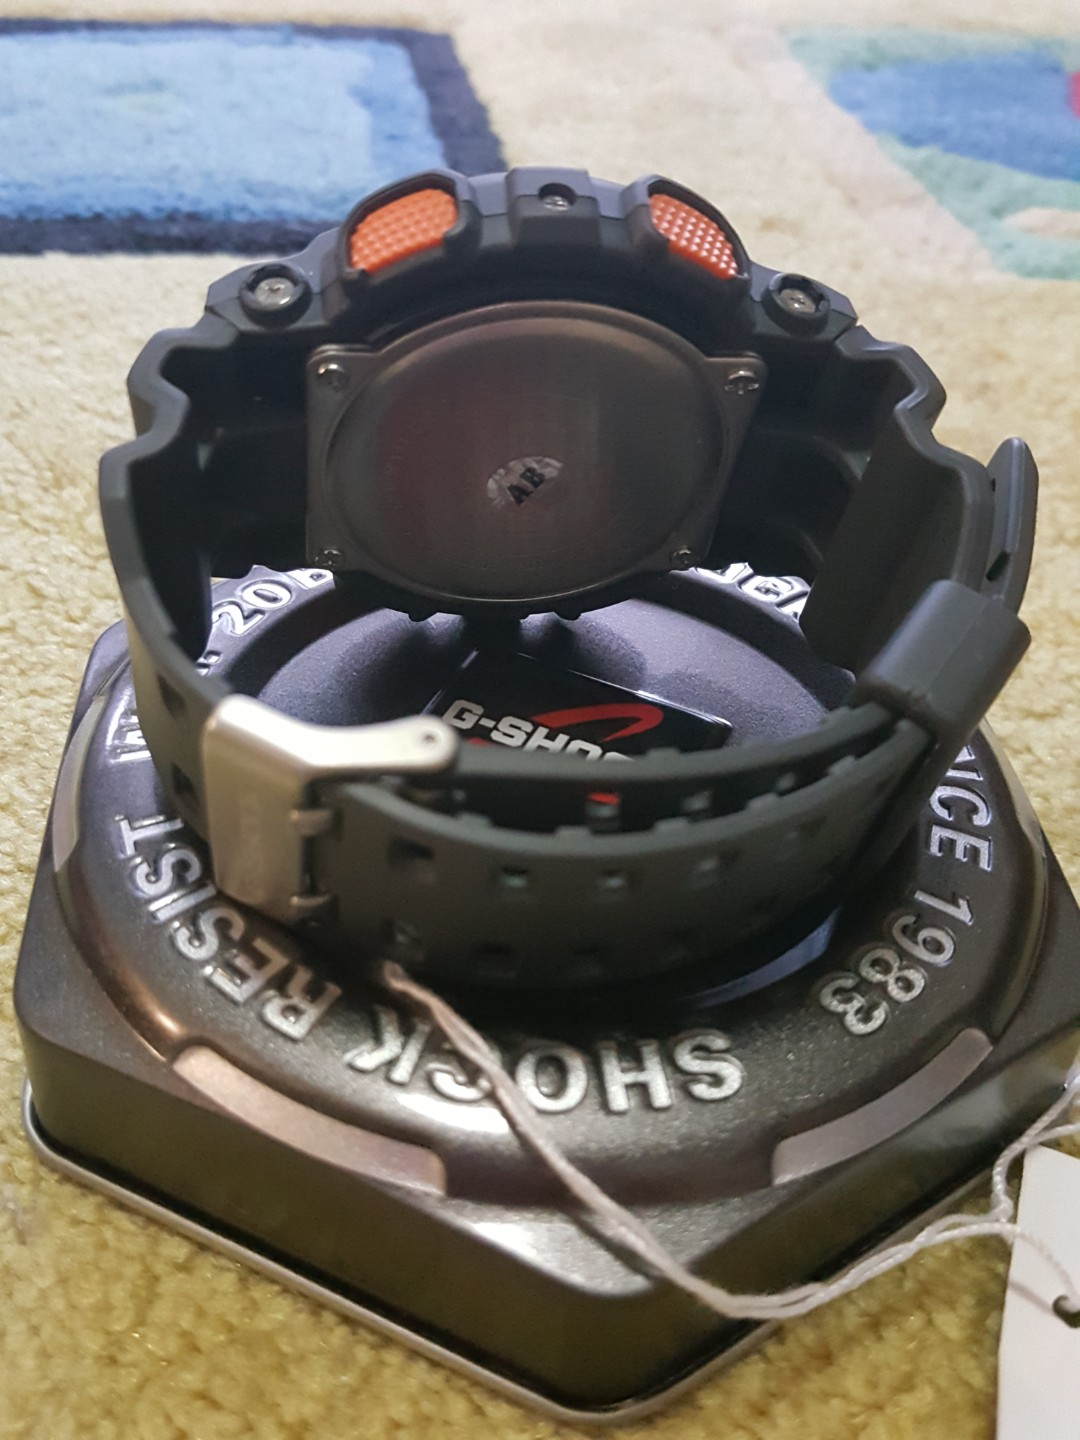 New Casio G Shock Ga 11ts 1a4drfree Postage Mens Fashion 110ts 1a4dr Black And Orange Dial With Led Light Share This Listing